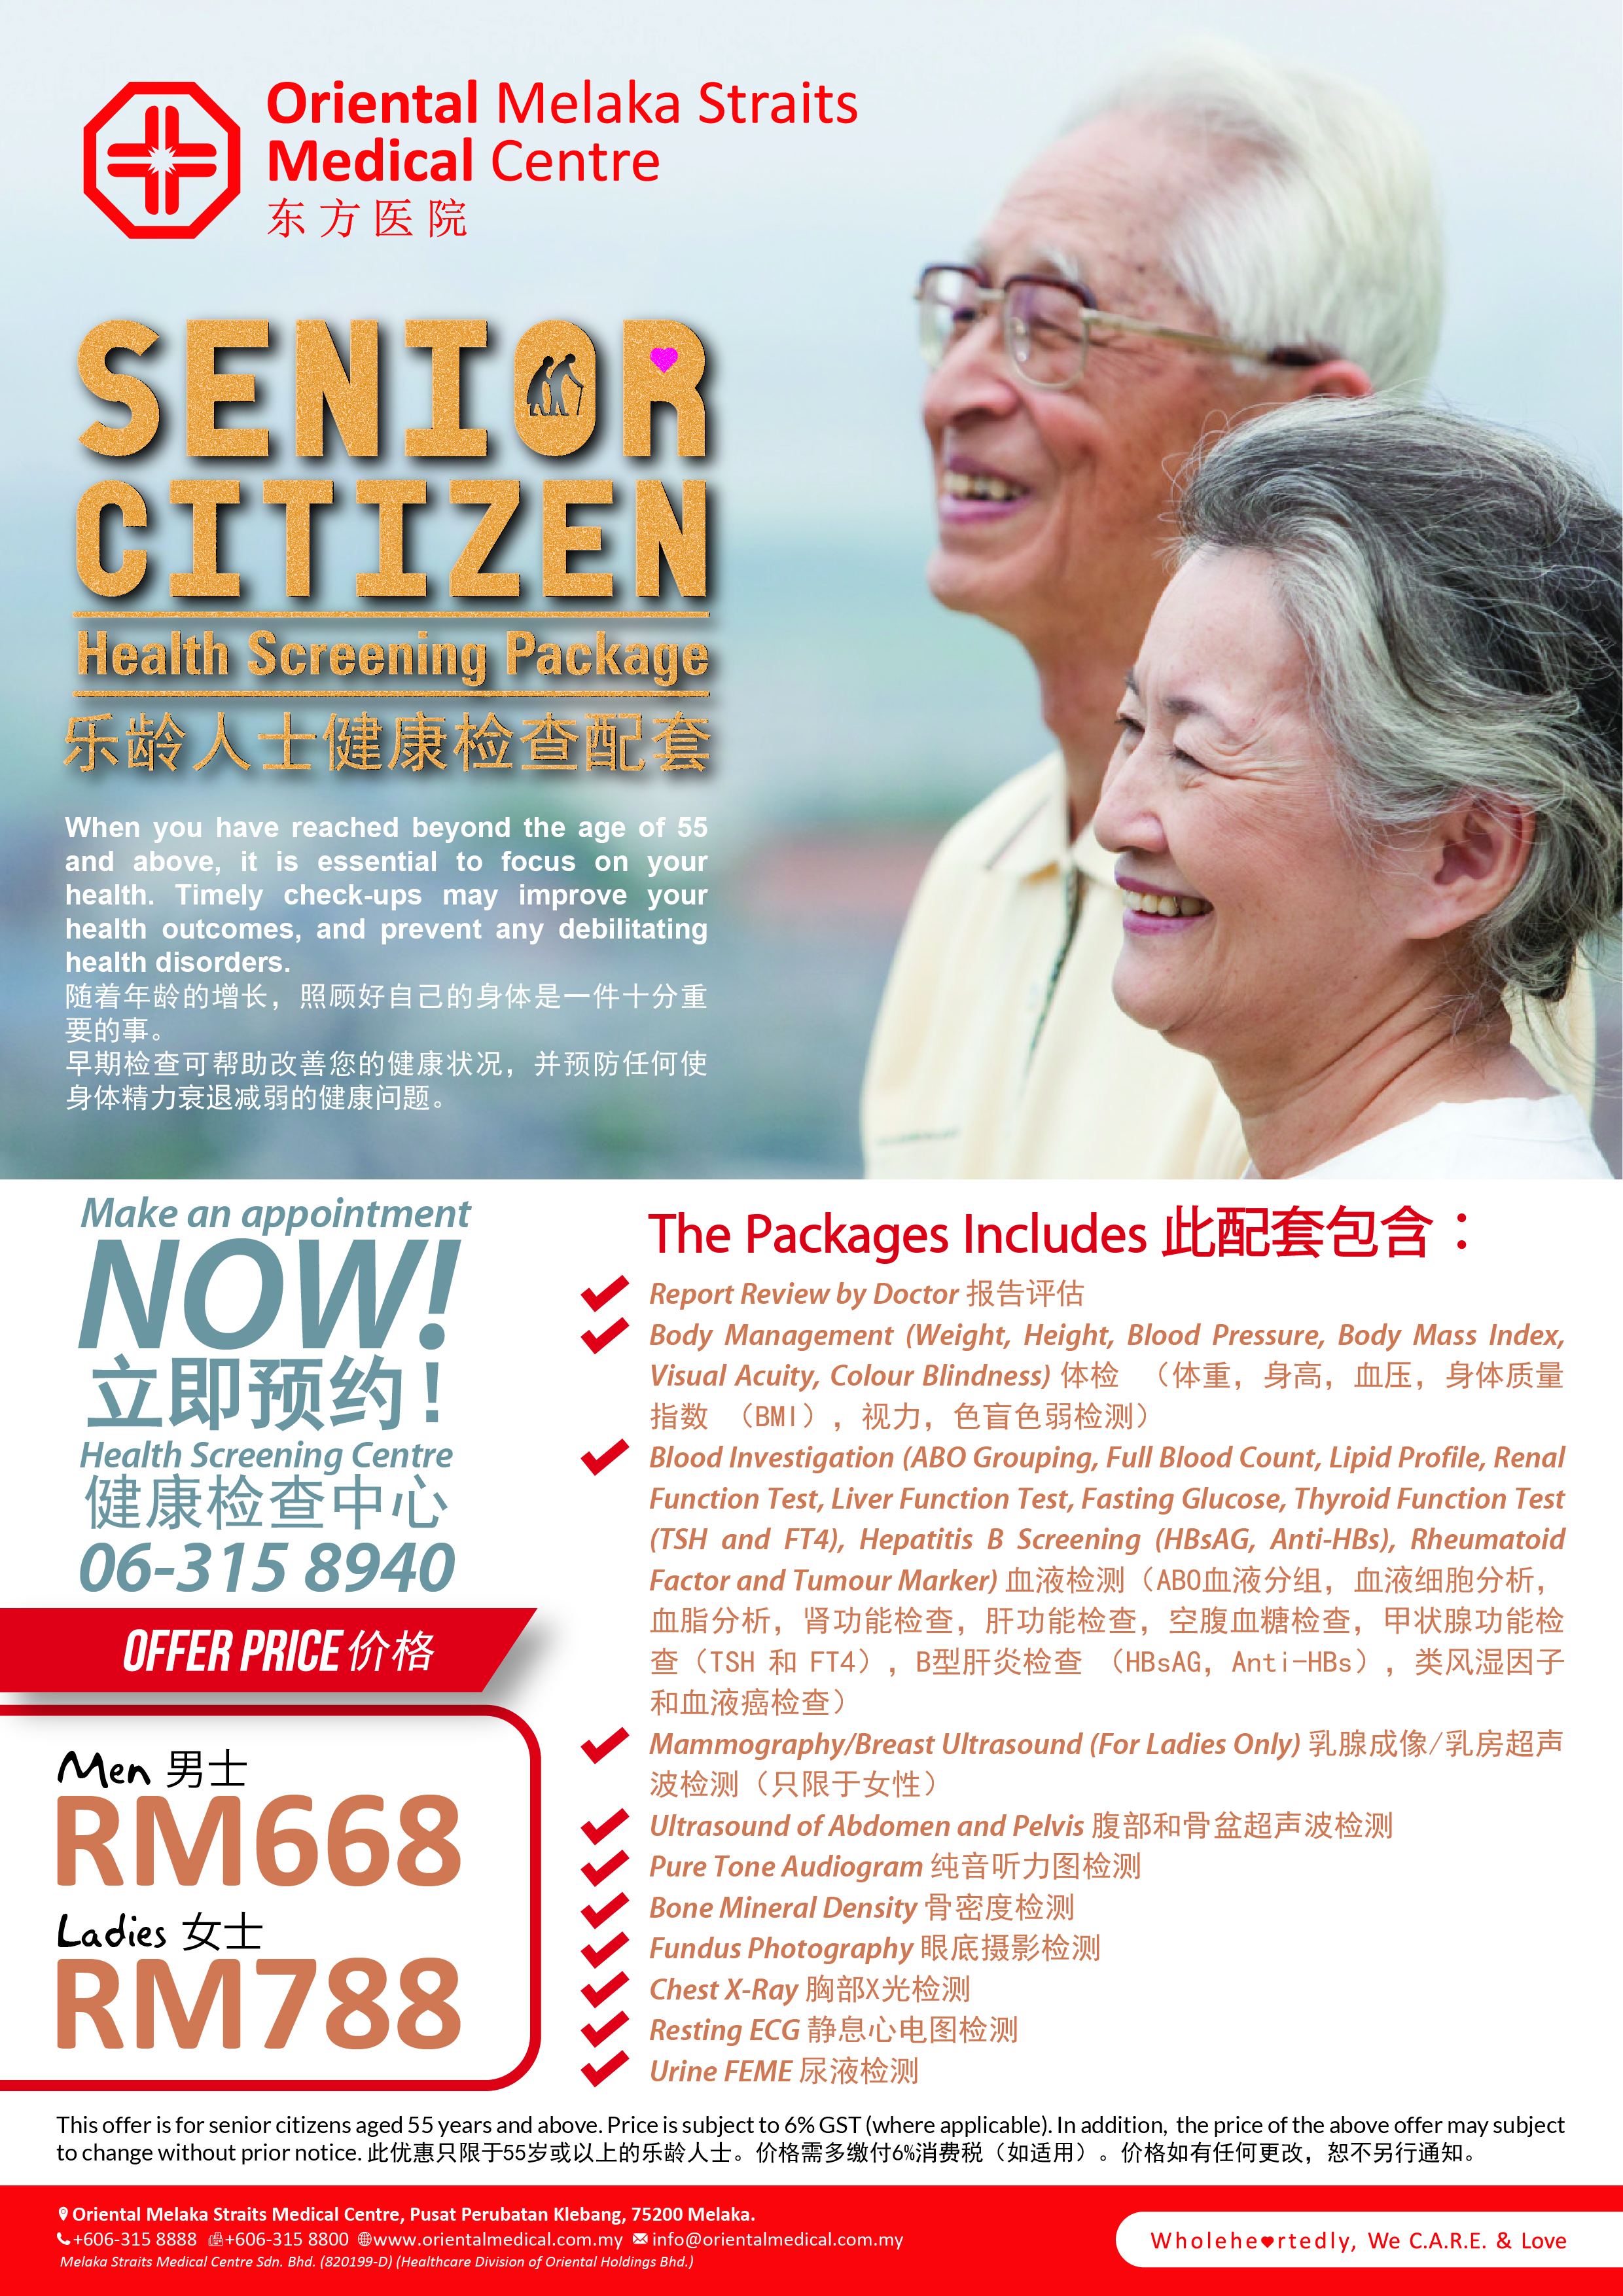 KKLIU_news-ads_Senior-Citizen-Package-2018_270318_nt-05